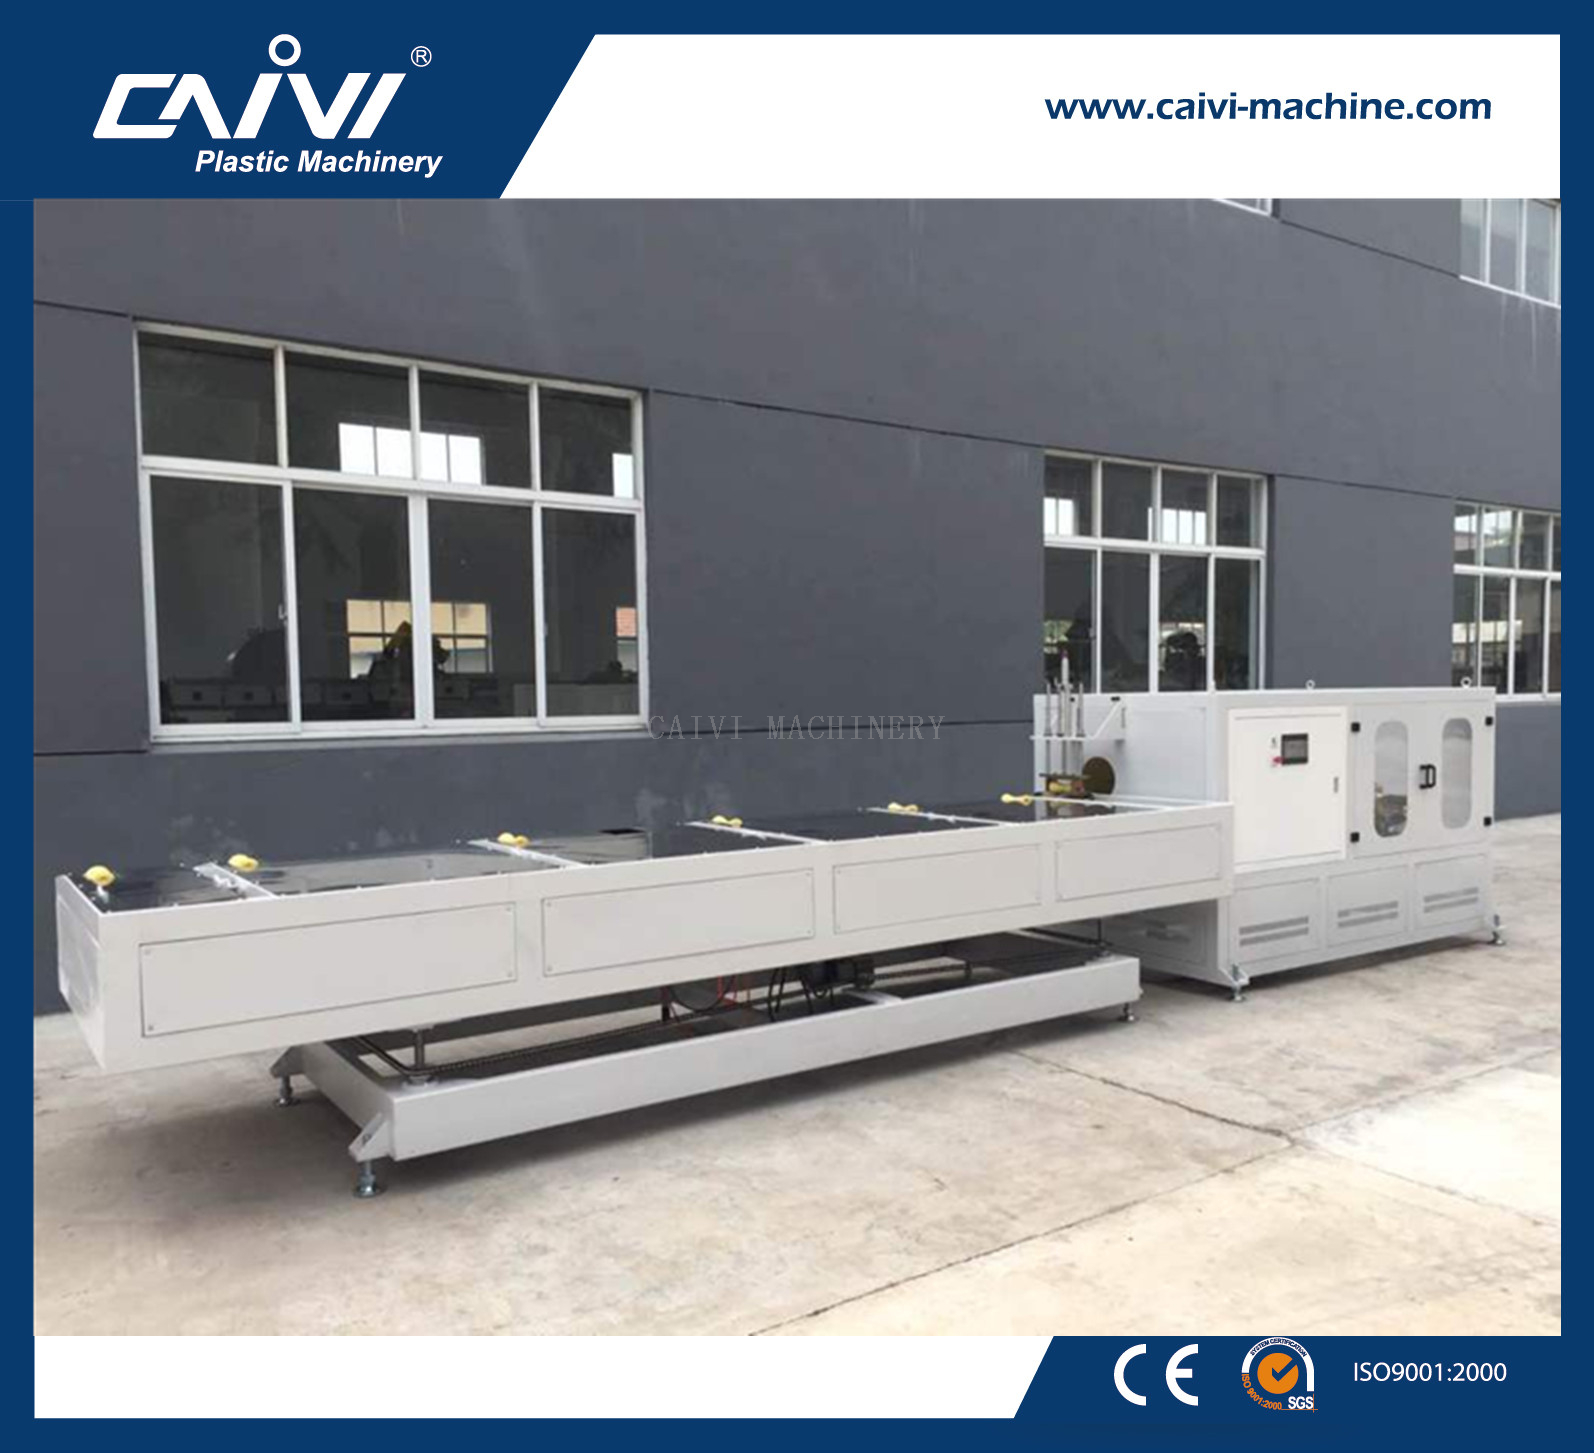 PVC/PE Pipe Threading Machine